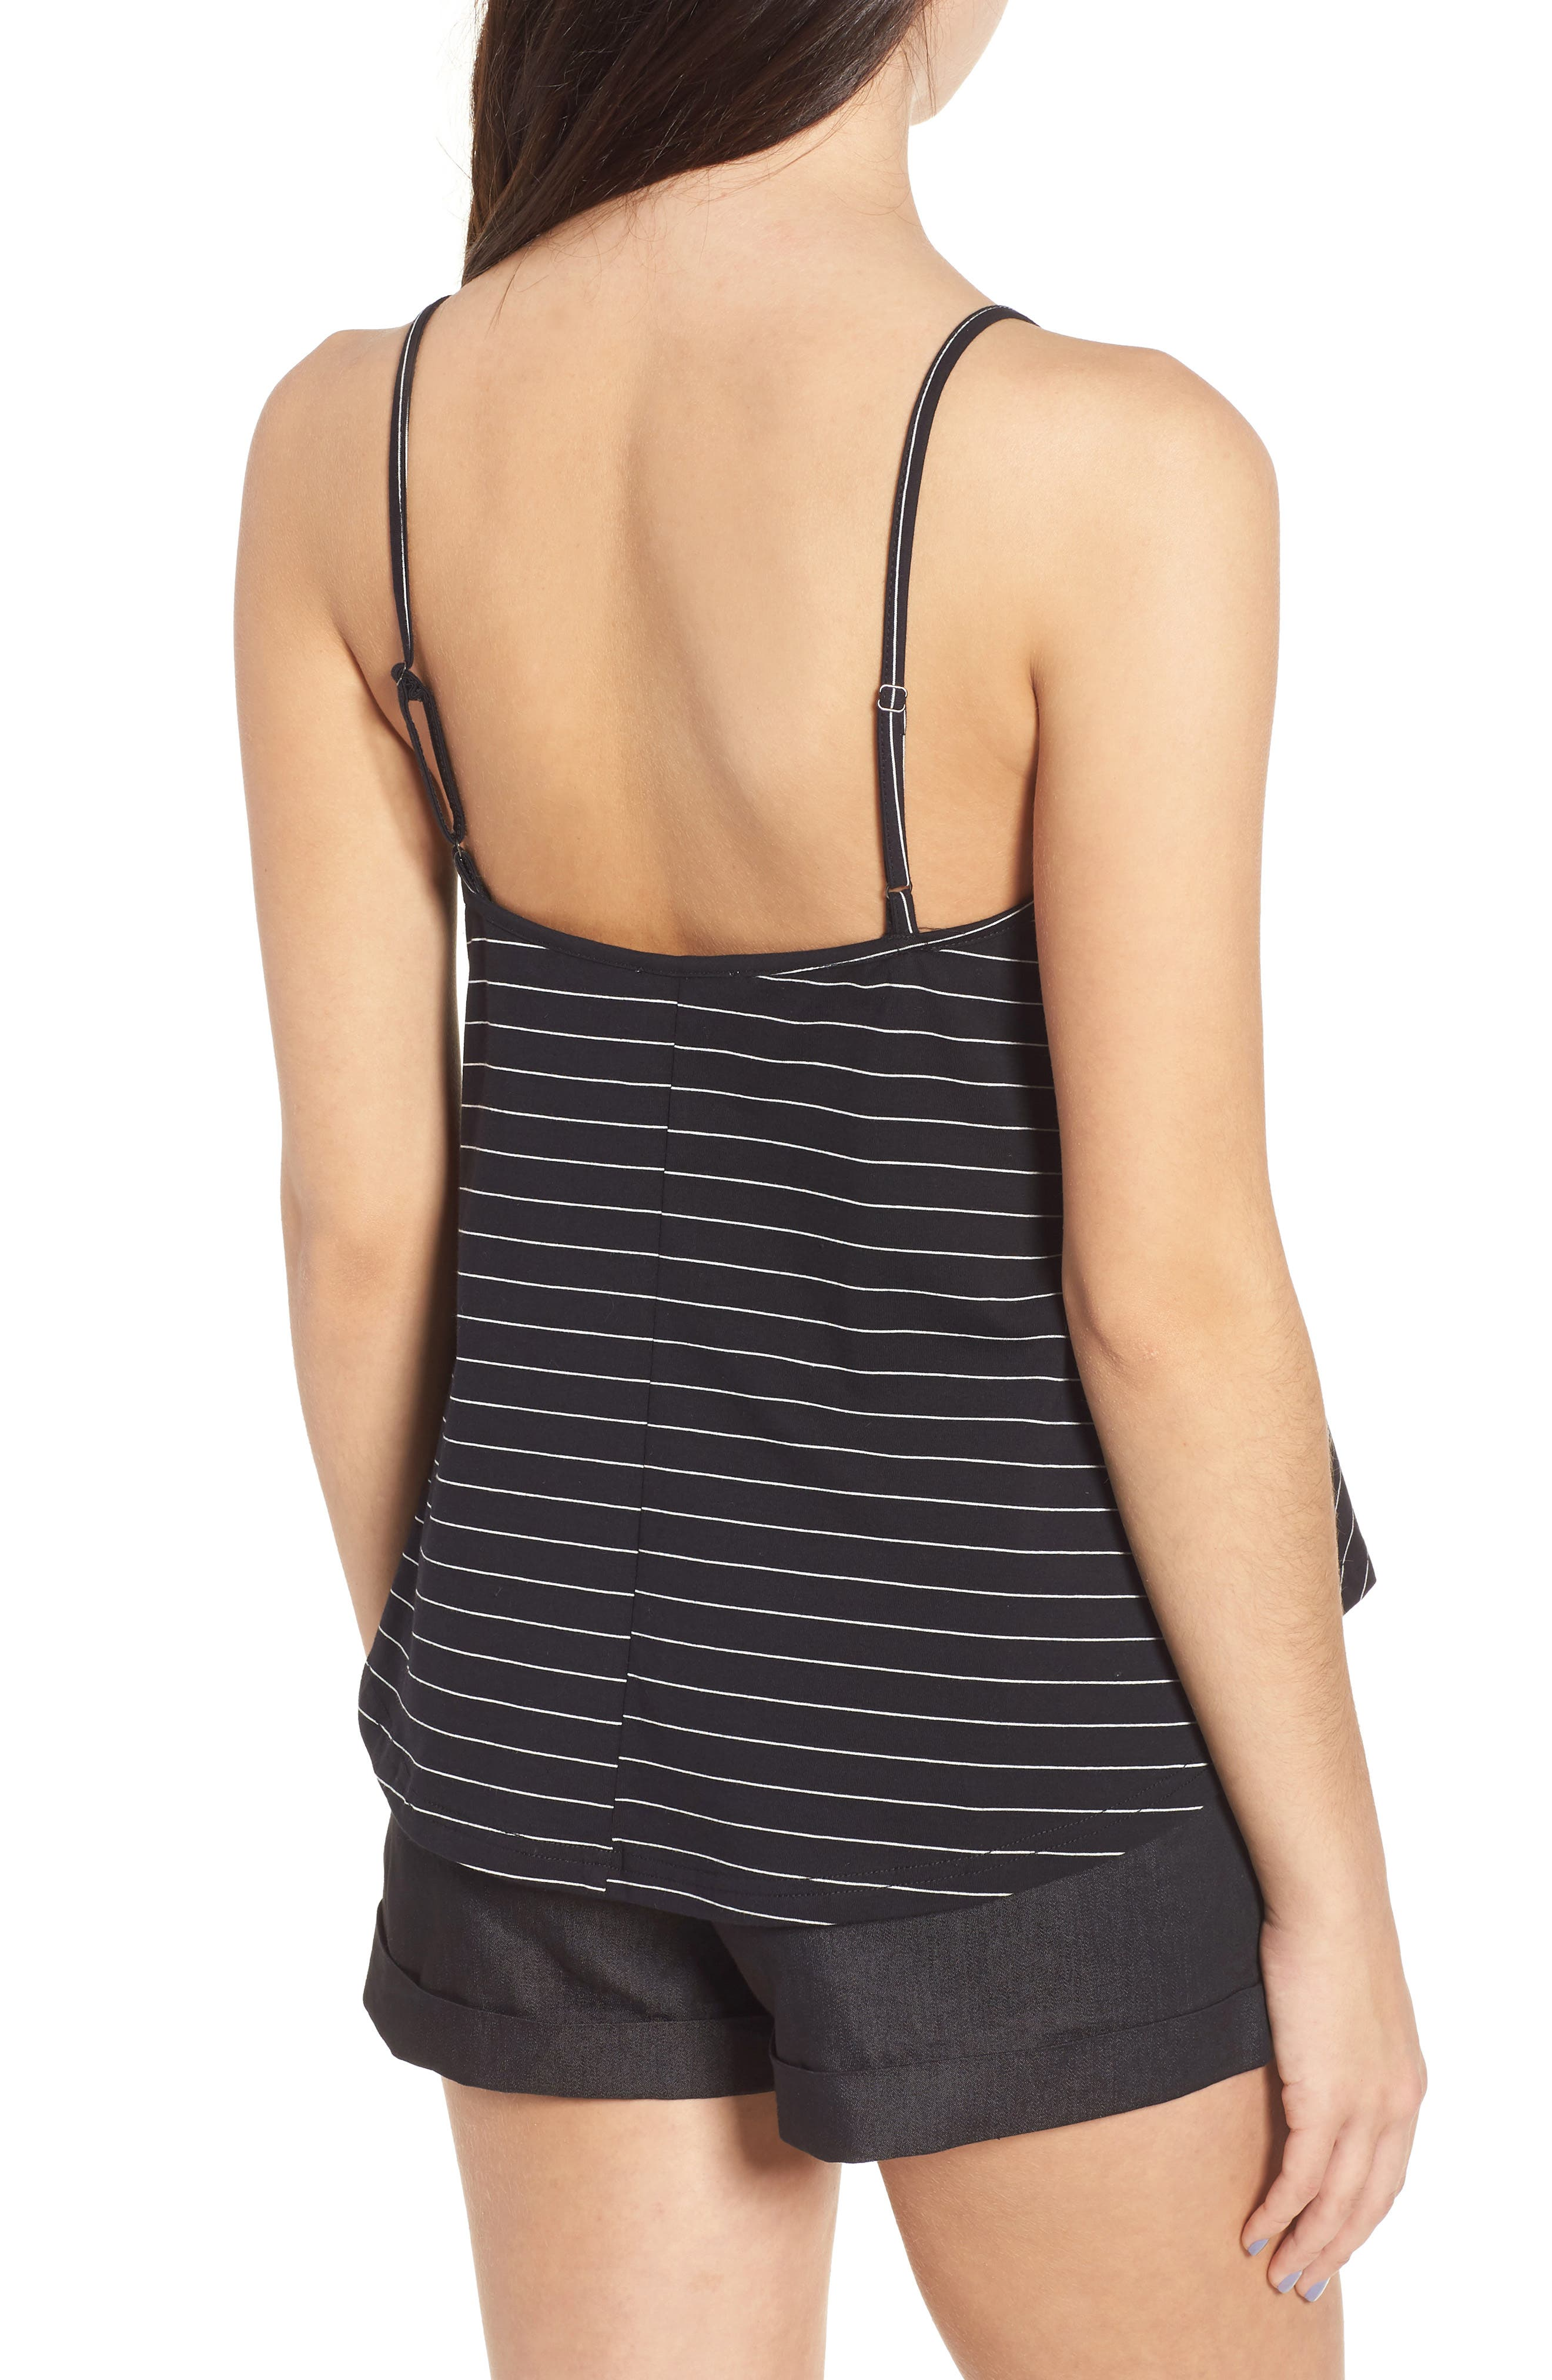 Harlow Stripe Camisole Top,                             Alternate thumbnail 2, color,                             001